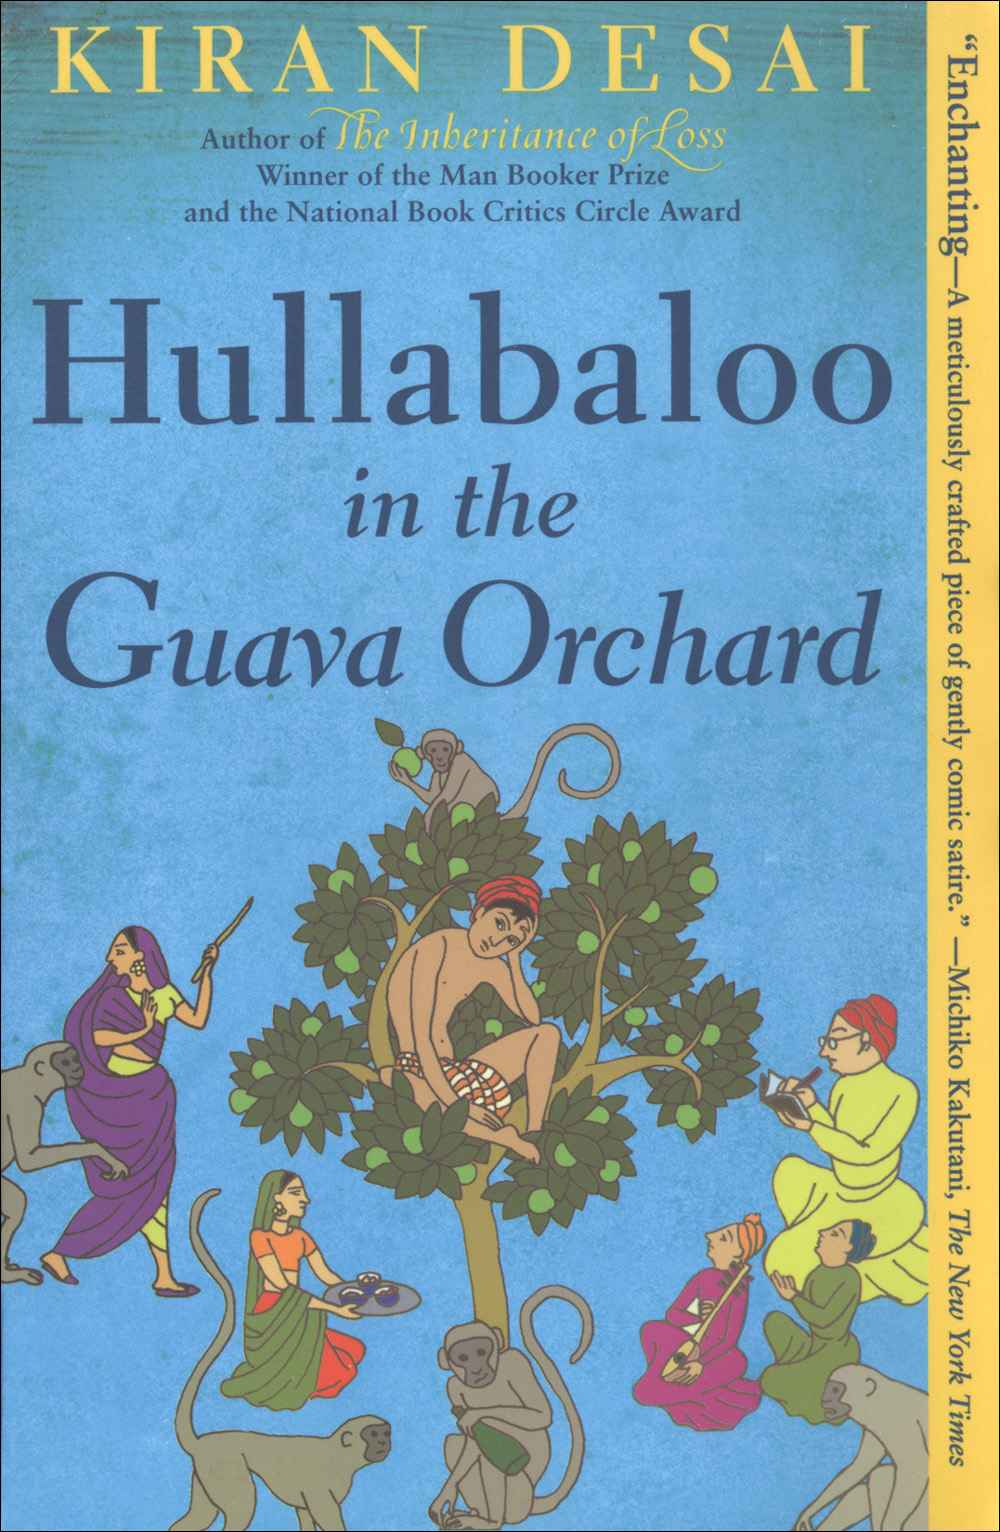 Desai Kiran - Hullabaloo in the Guava Orchard скачать бесплатно